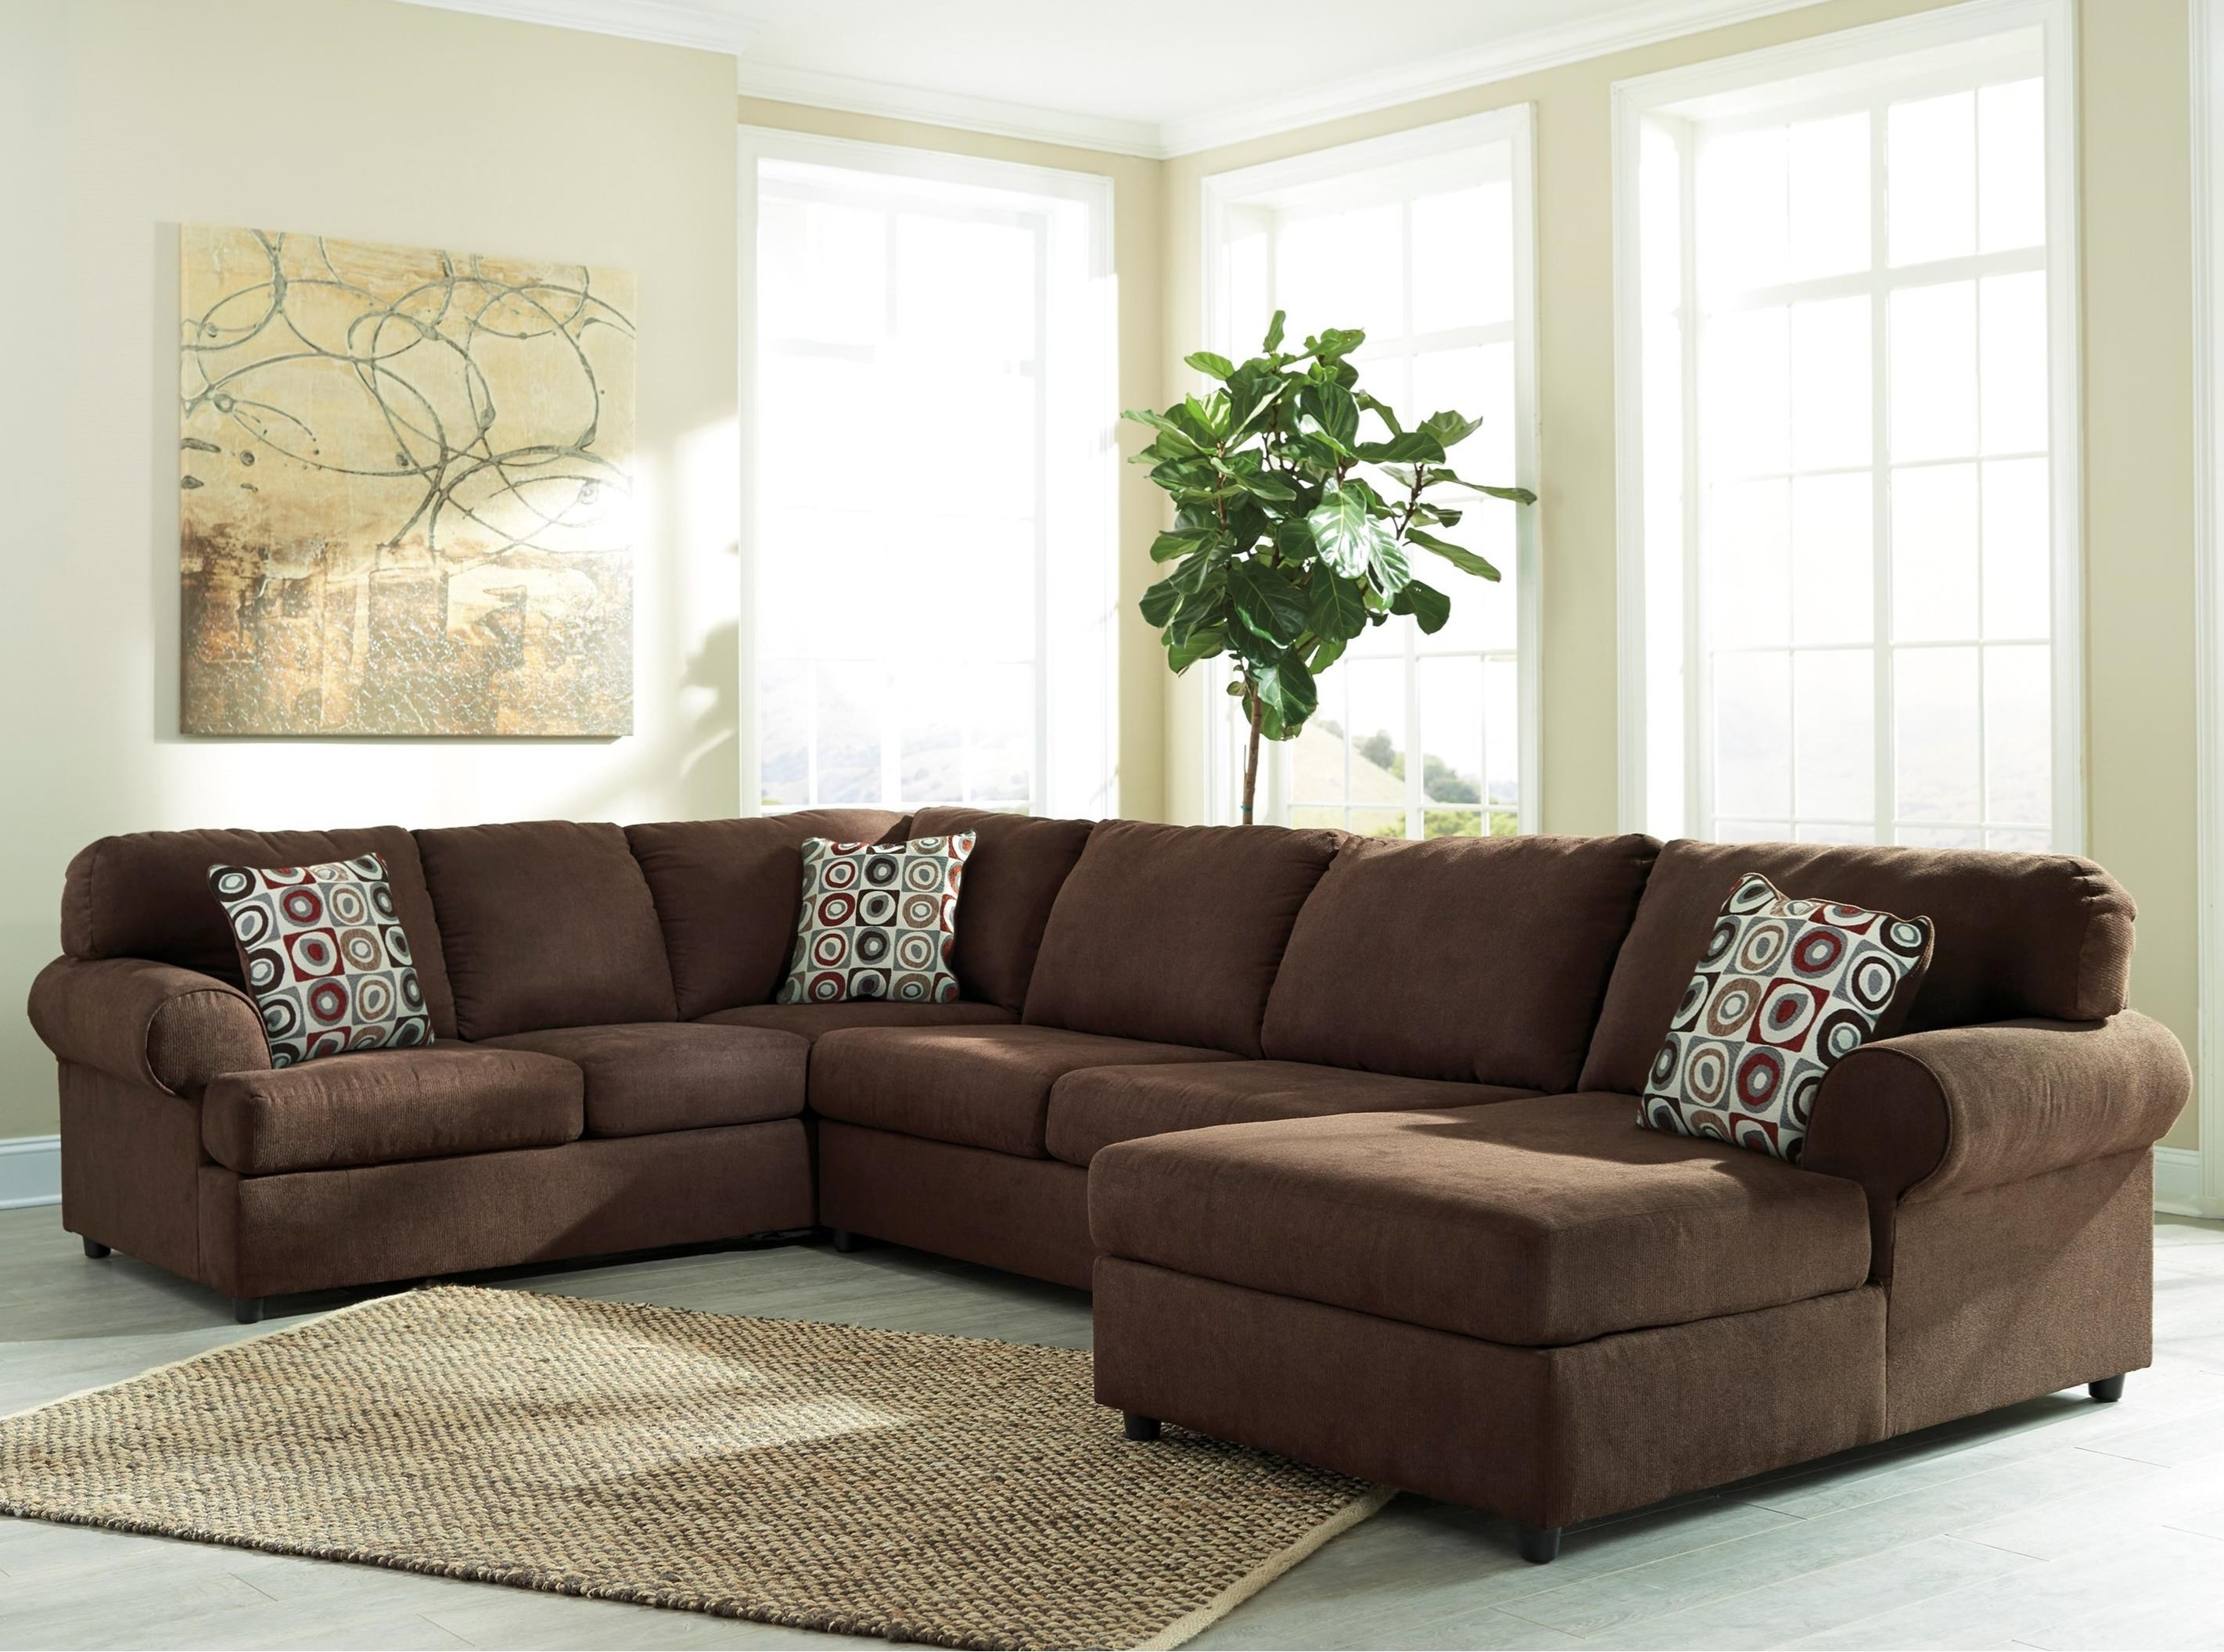 Ashley signature design jayceon 3 piece sectional with for Ashley furniture chaise lounge couch